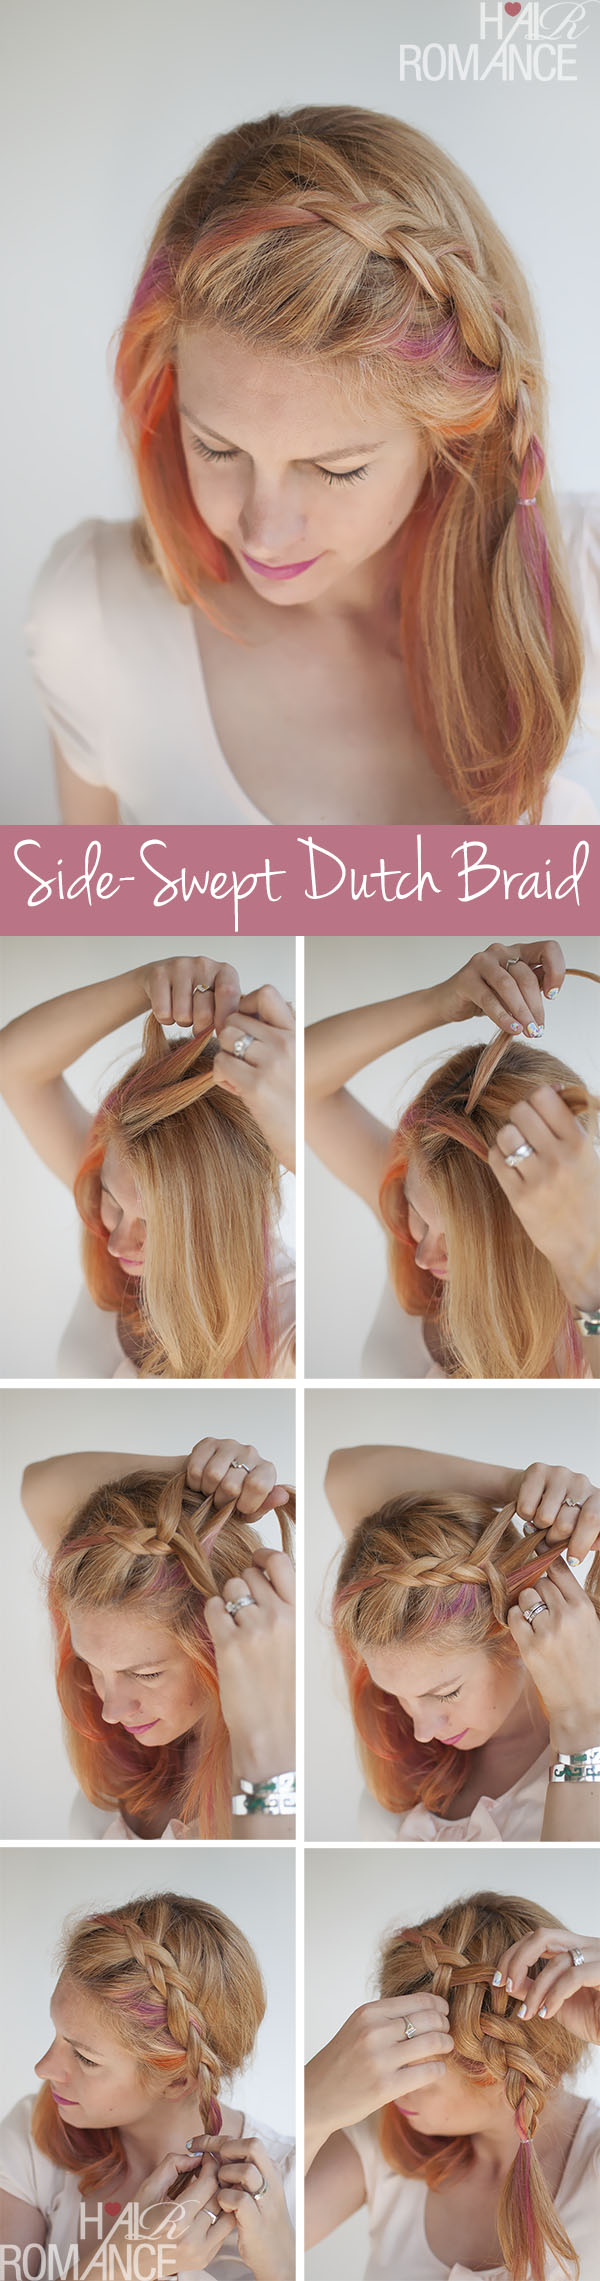 Braid hair tutorials 12 ways to braid your hair hairstyles weekly